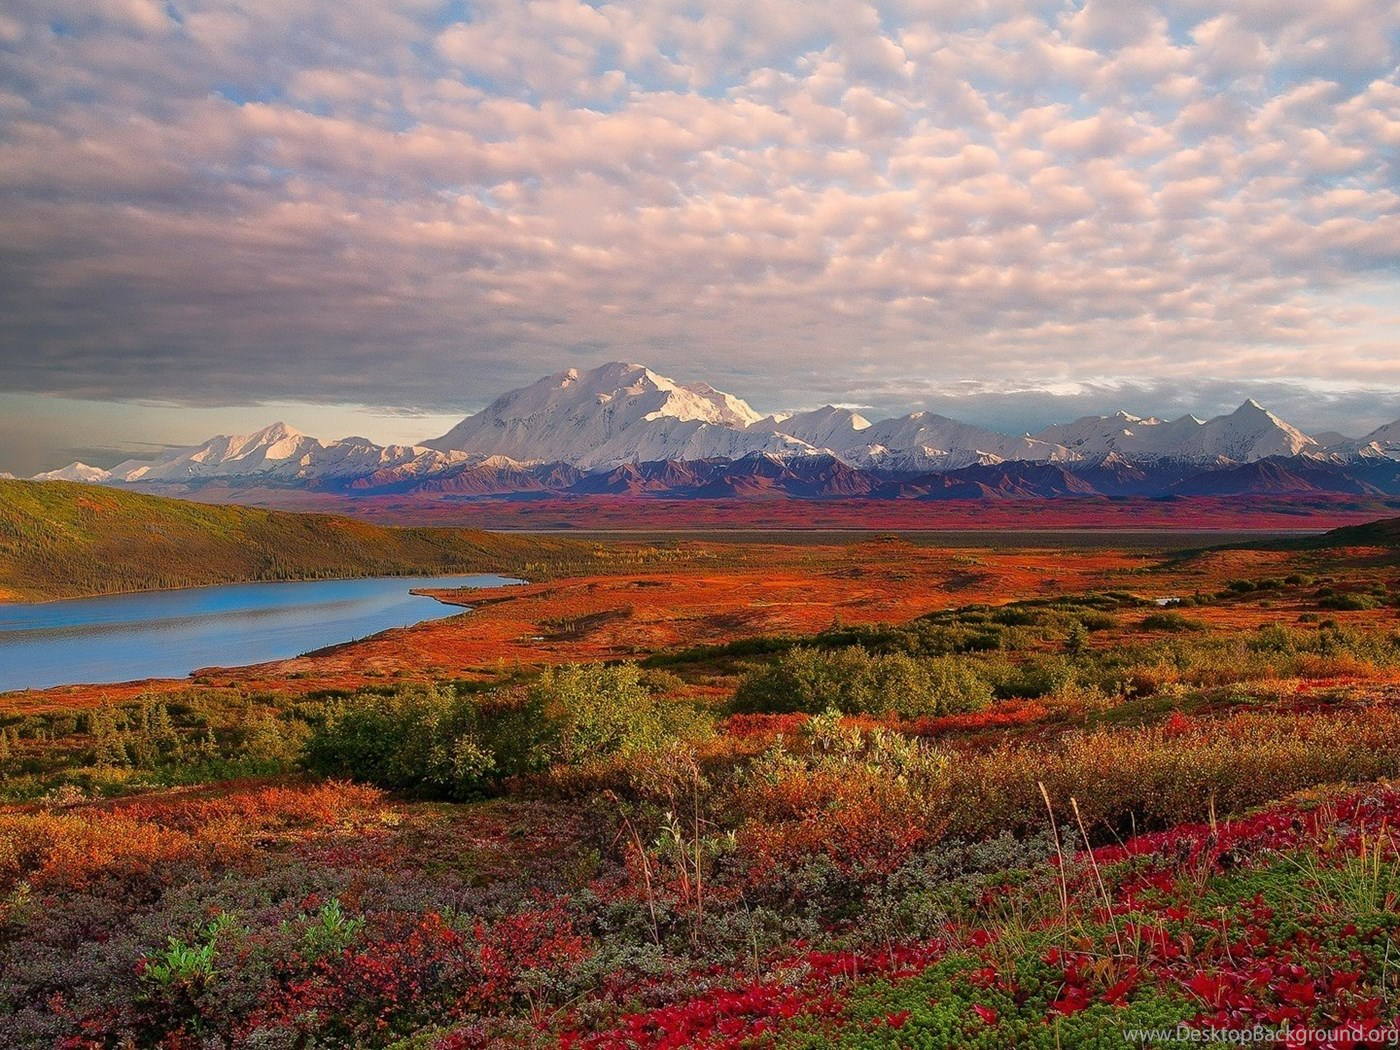 denali national park catholic single men After denali, johnson went south to tok, buying two $400 denali park buses before he left, and purchasing some property upon his arrival he shuttled the buses down and began his alaskan life the move to this highway town made sense.